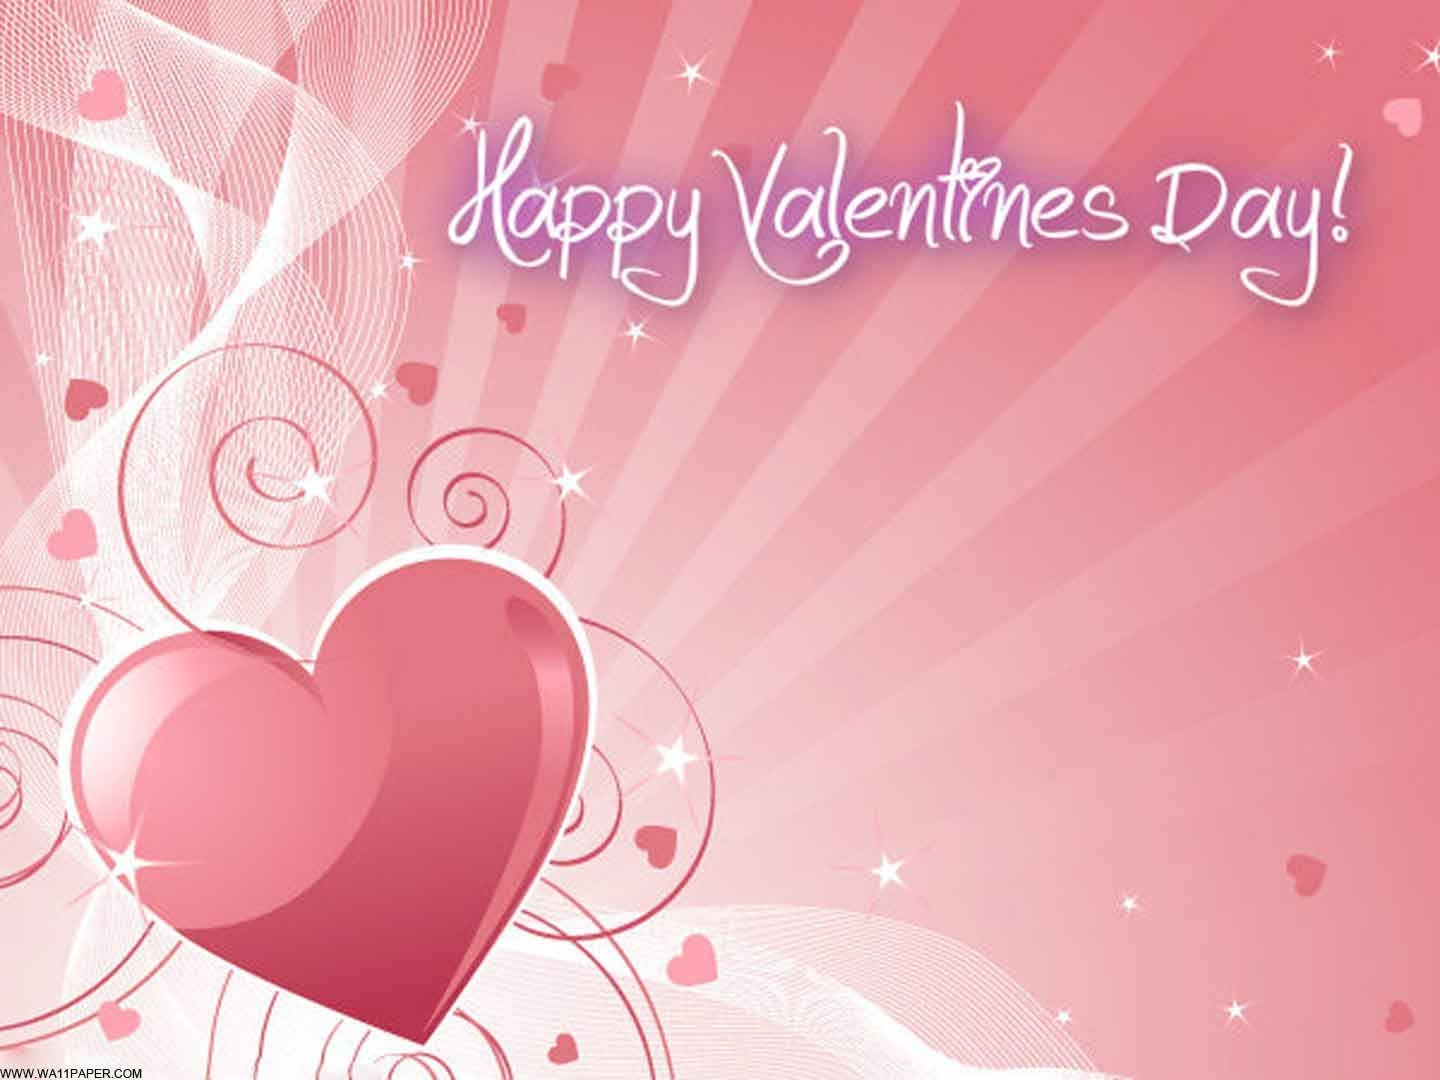 valentines day wallpapers free - wallpaper cave